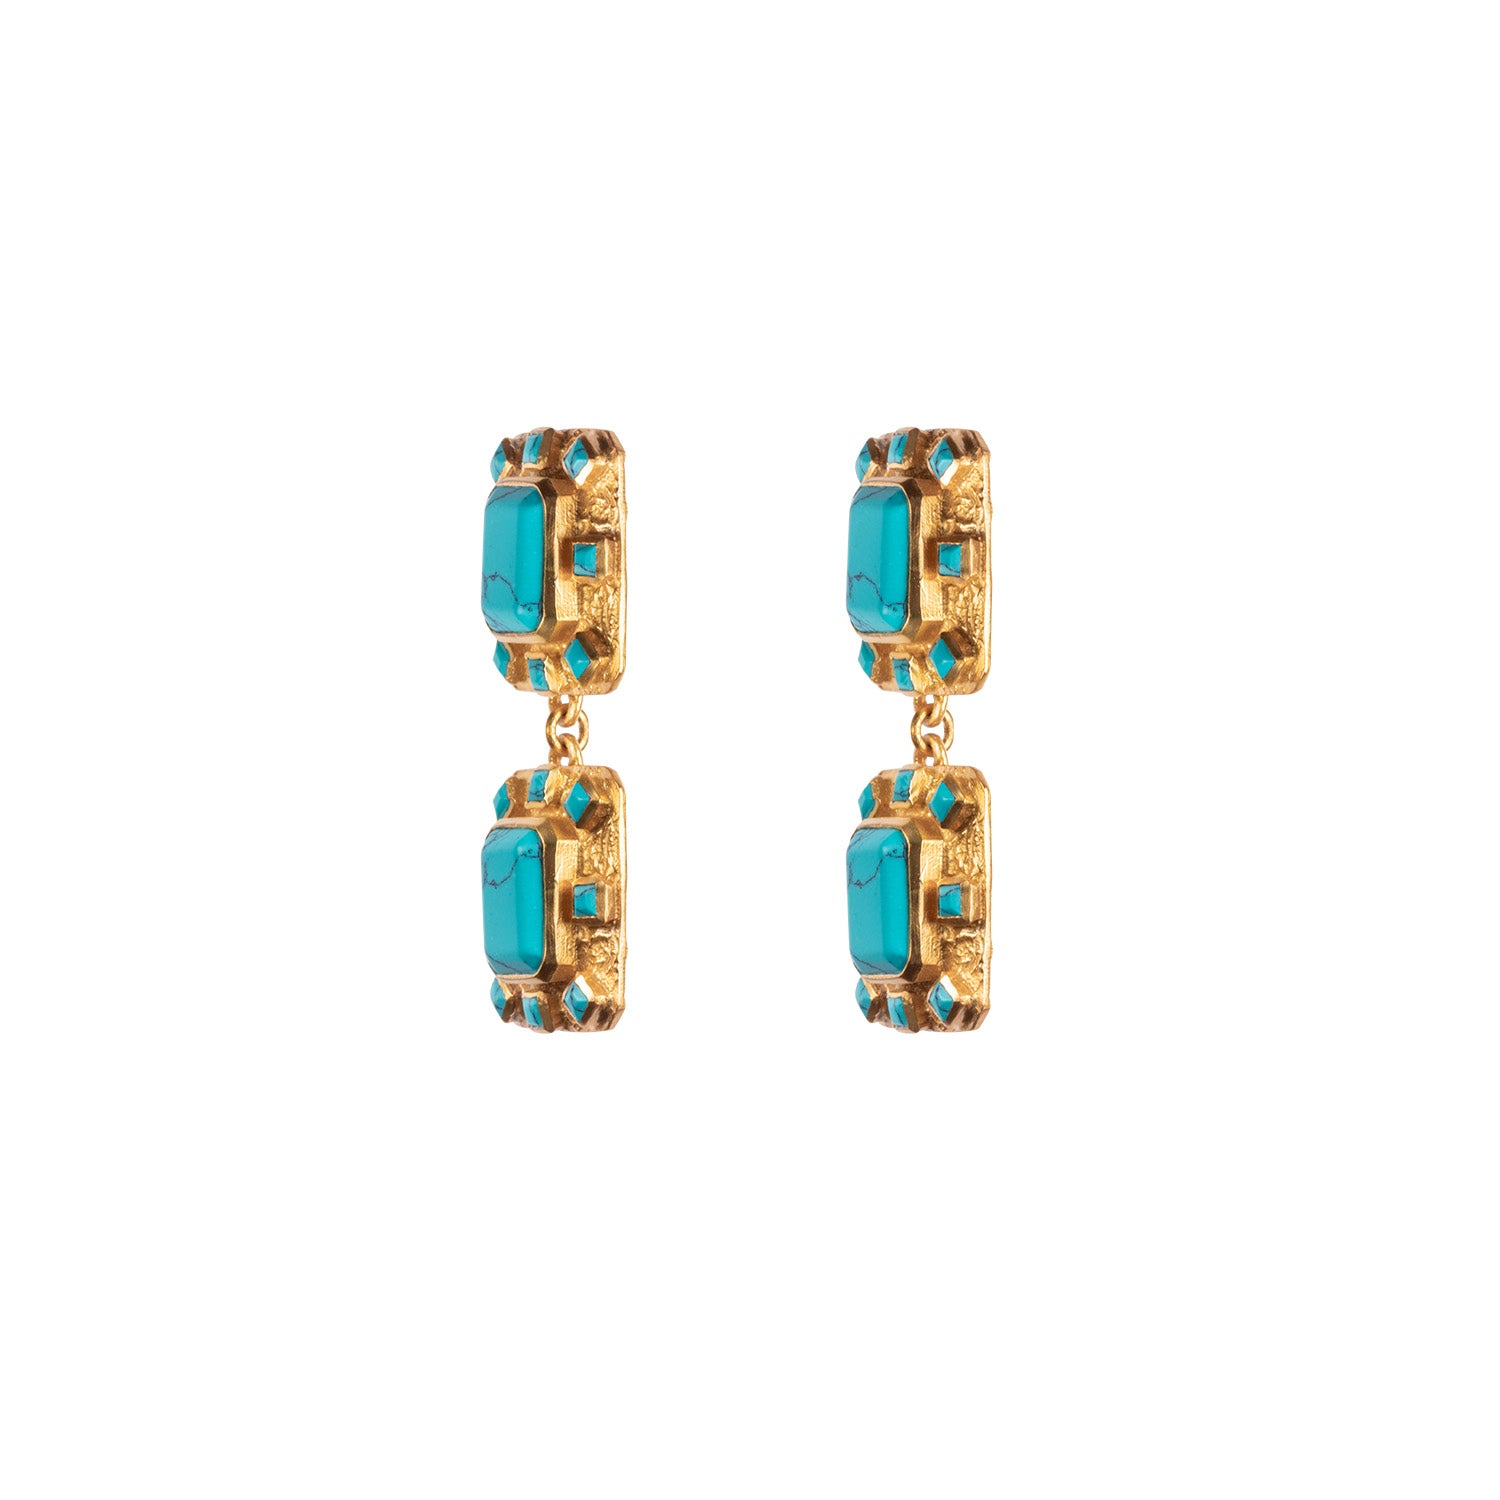 Reef Earrings Turquoise (PRE ORDER)